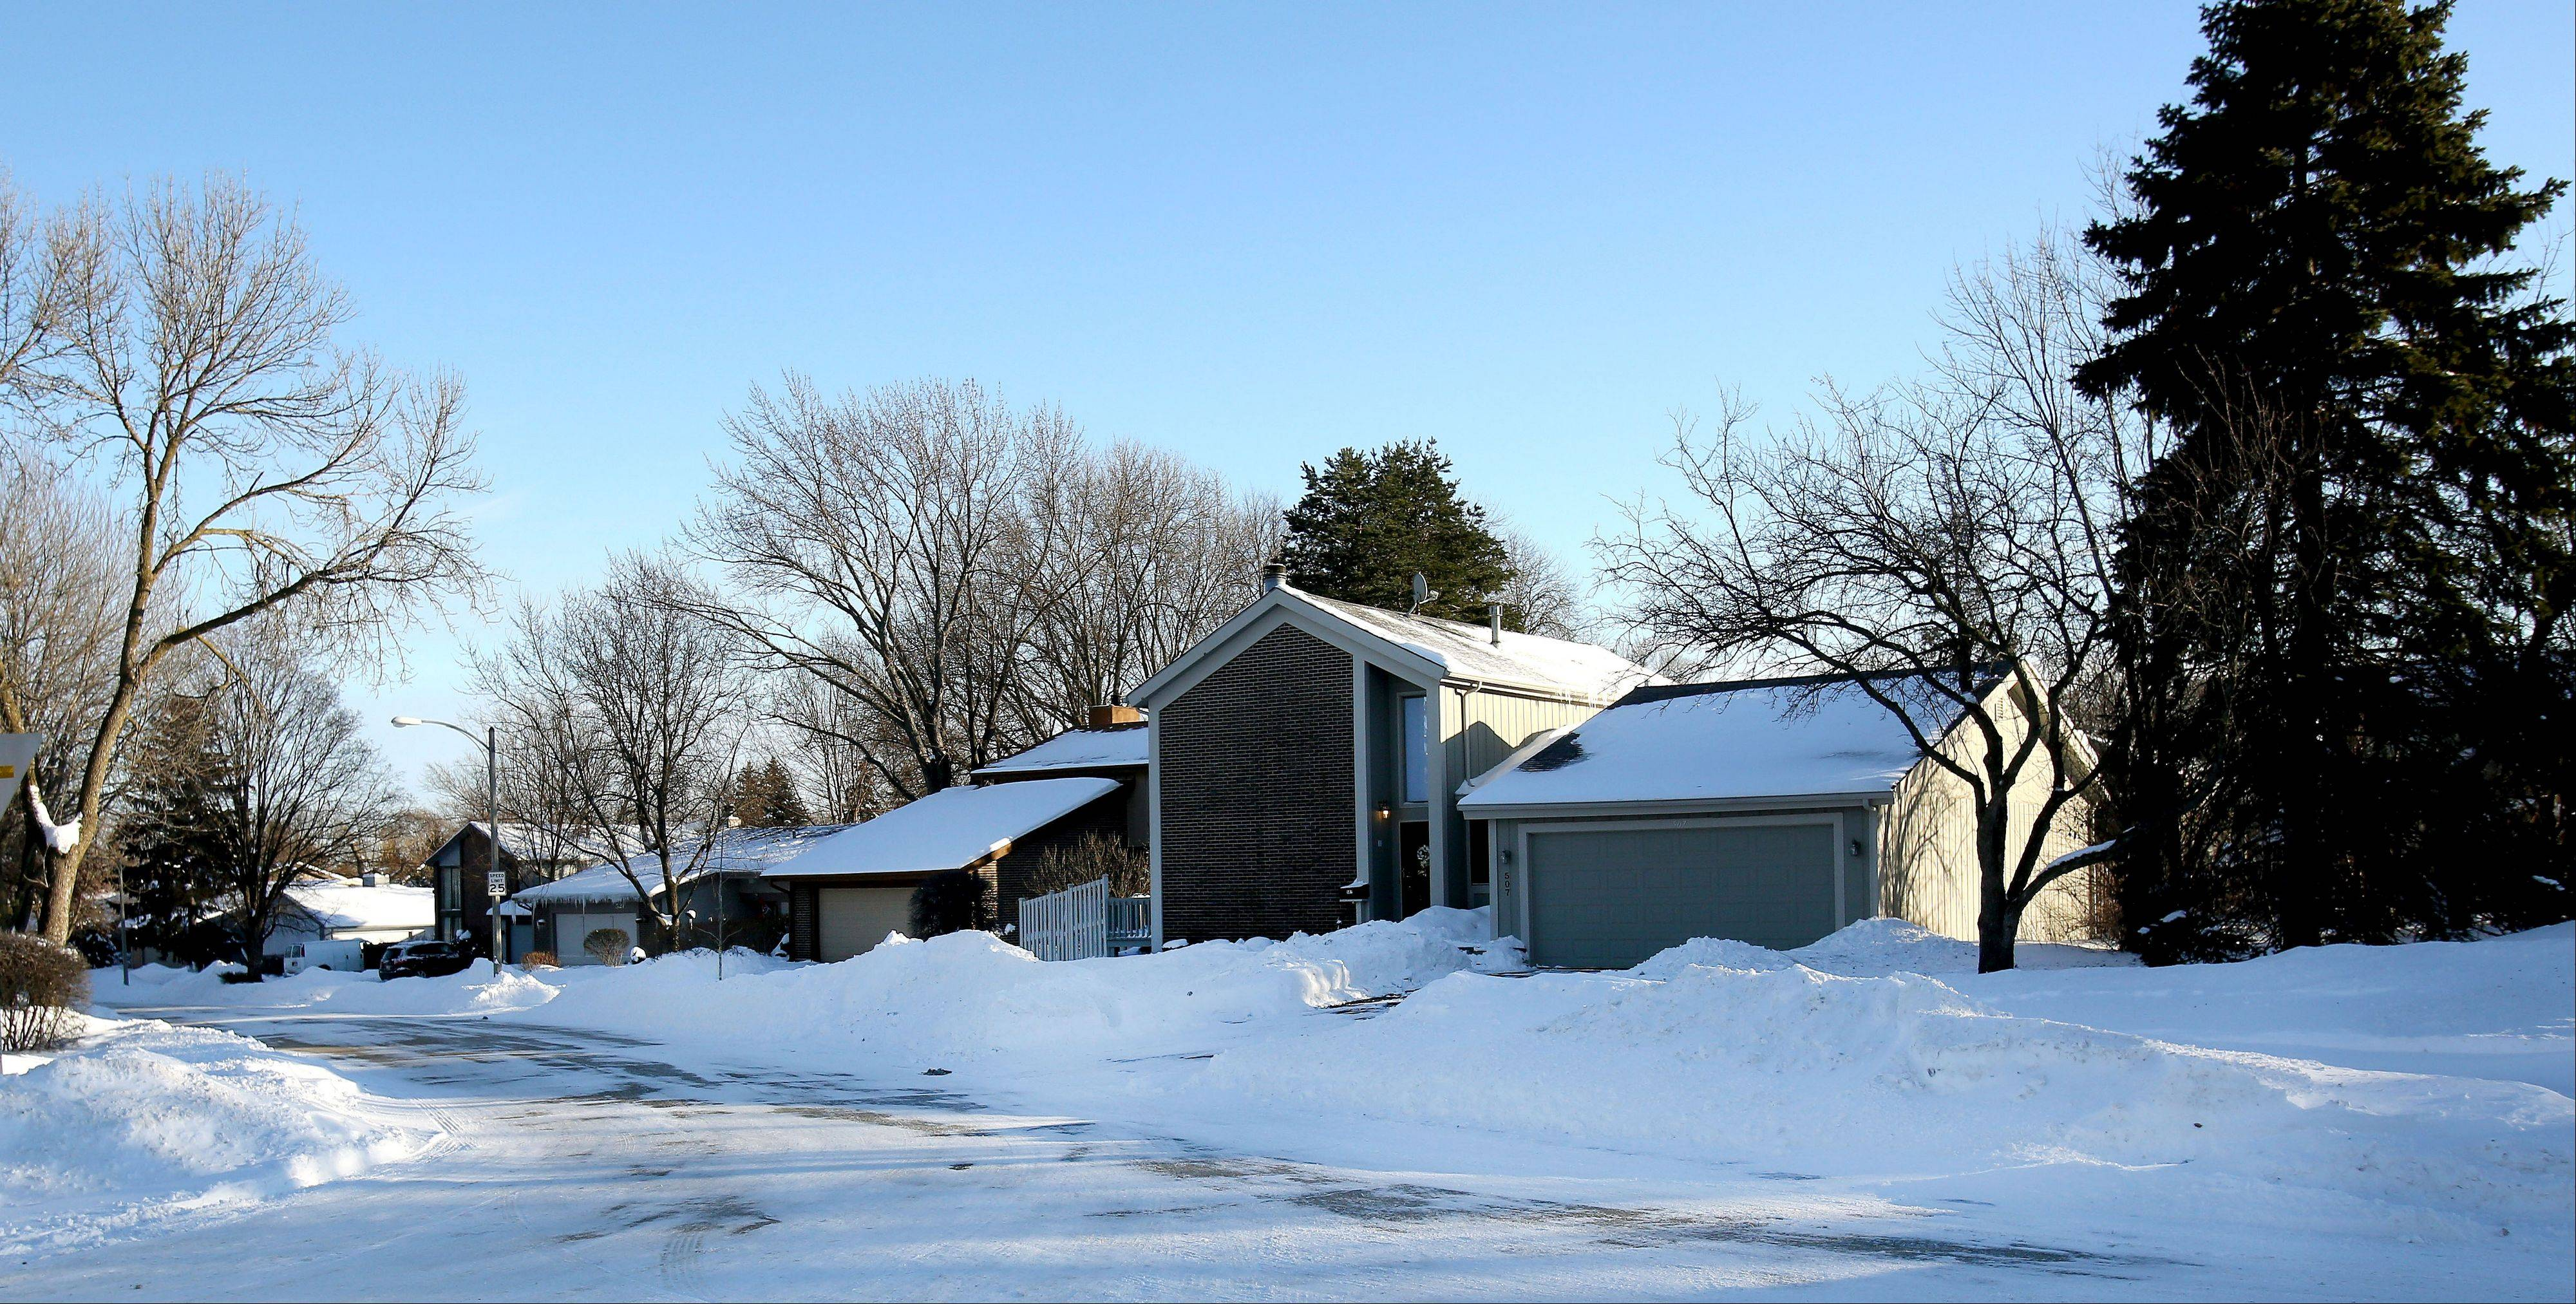 Glacier Trail, a street in Roselle's Trails neighborhood, seems appropriately named after this winter's recent snowfall.